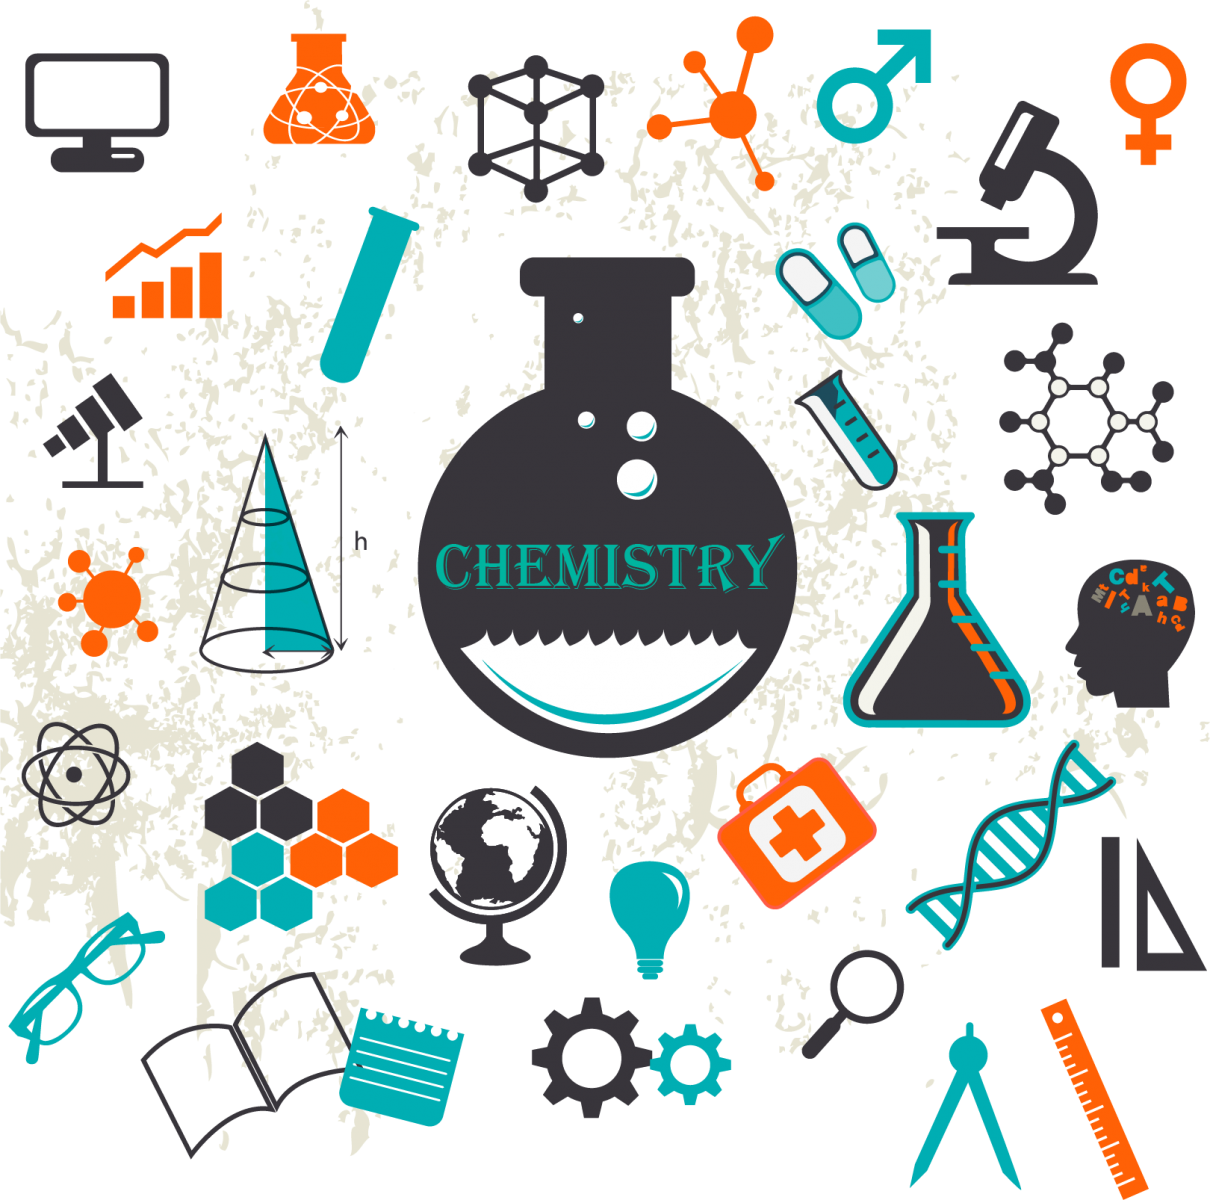 Course joint first year. Chemistry clipart general chemistry